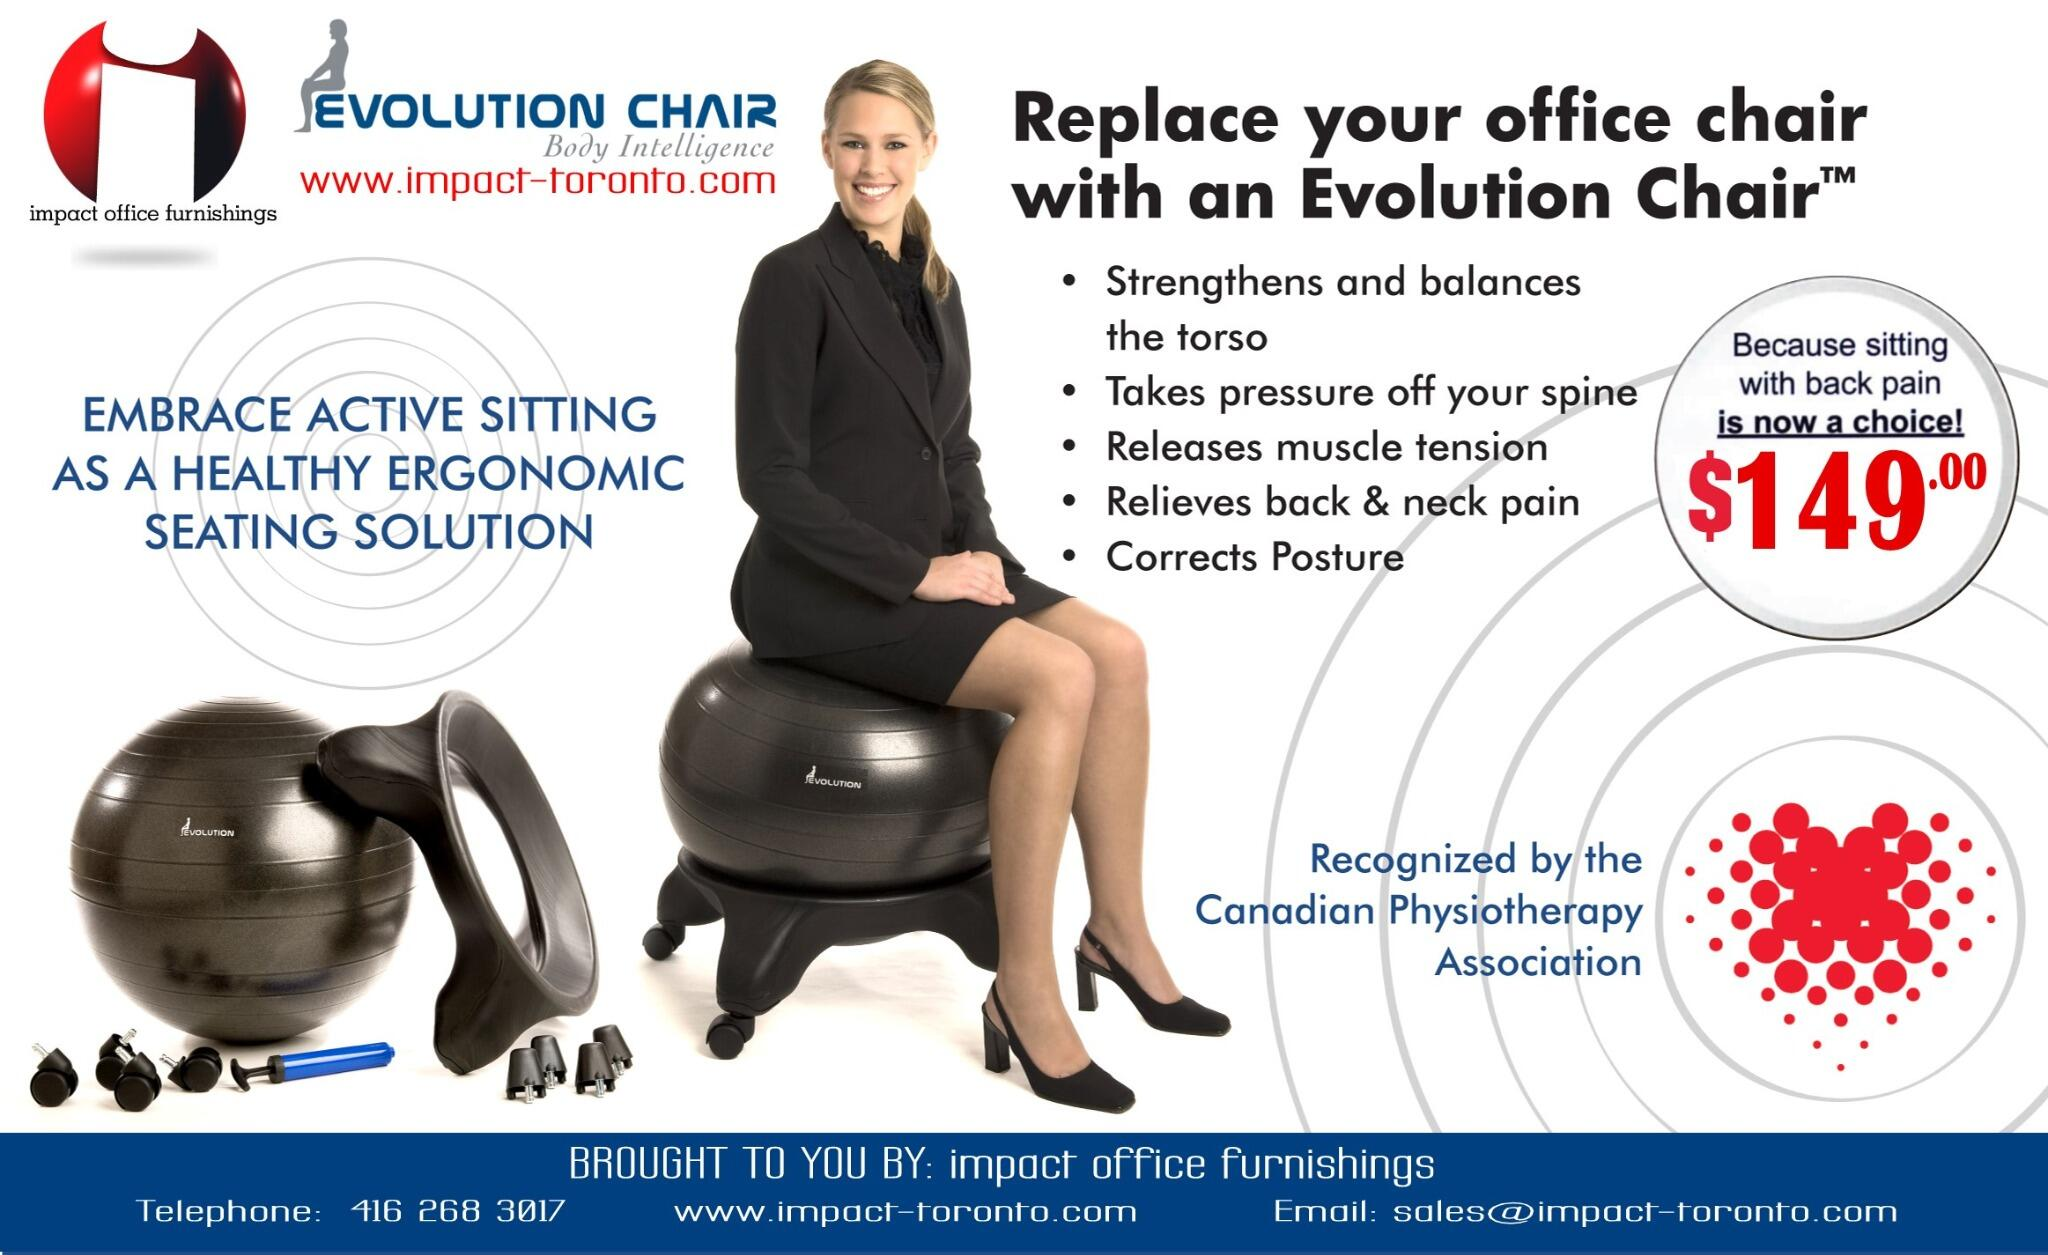 #OfficeFurniture #Toronto #Ontario #Oakville #Mississauga #Brampton #Markham #Barrie #RichmondHill #Vaughan  #Whitby http://t.co/igRRUrRoLR